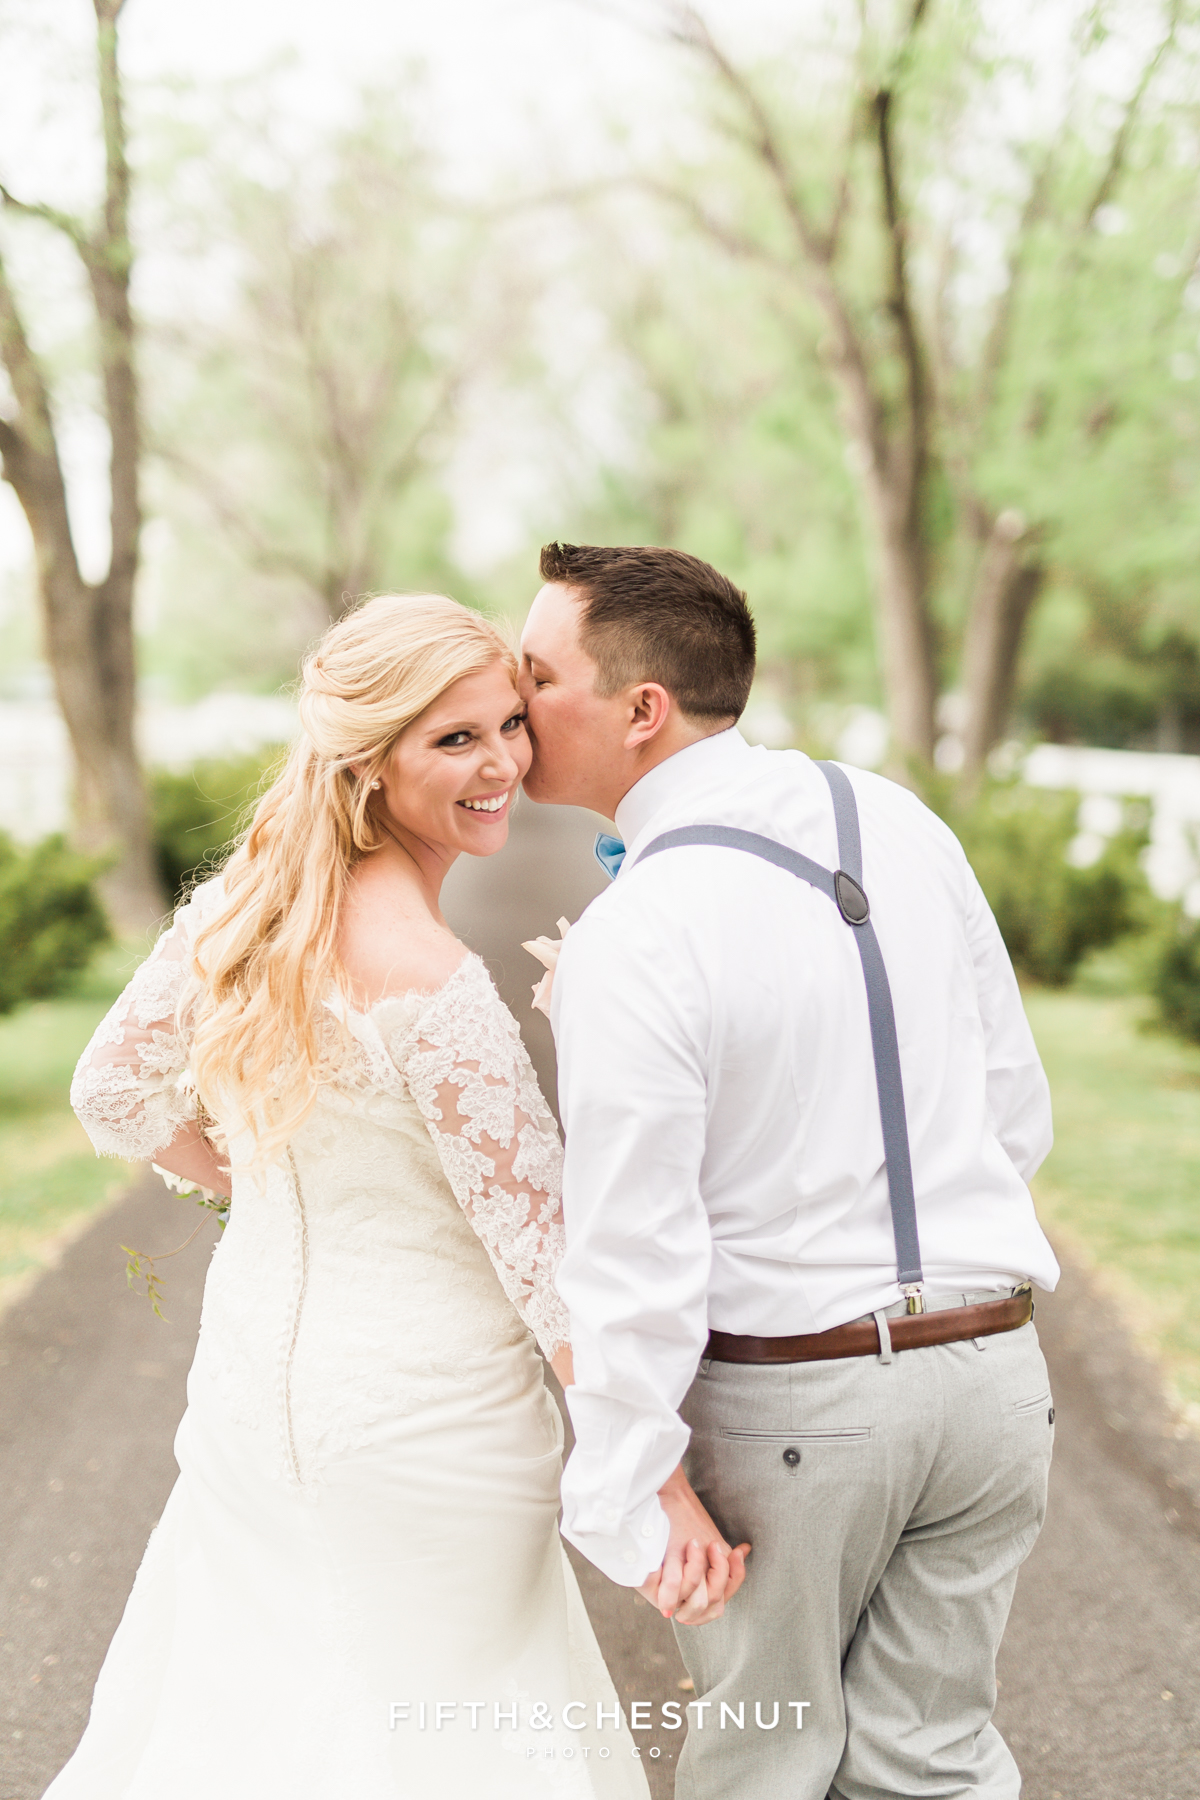 Bride laughing as her groom kisses her cheek as they walk down an oak-lined path